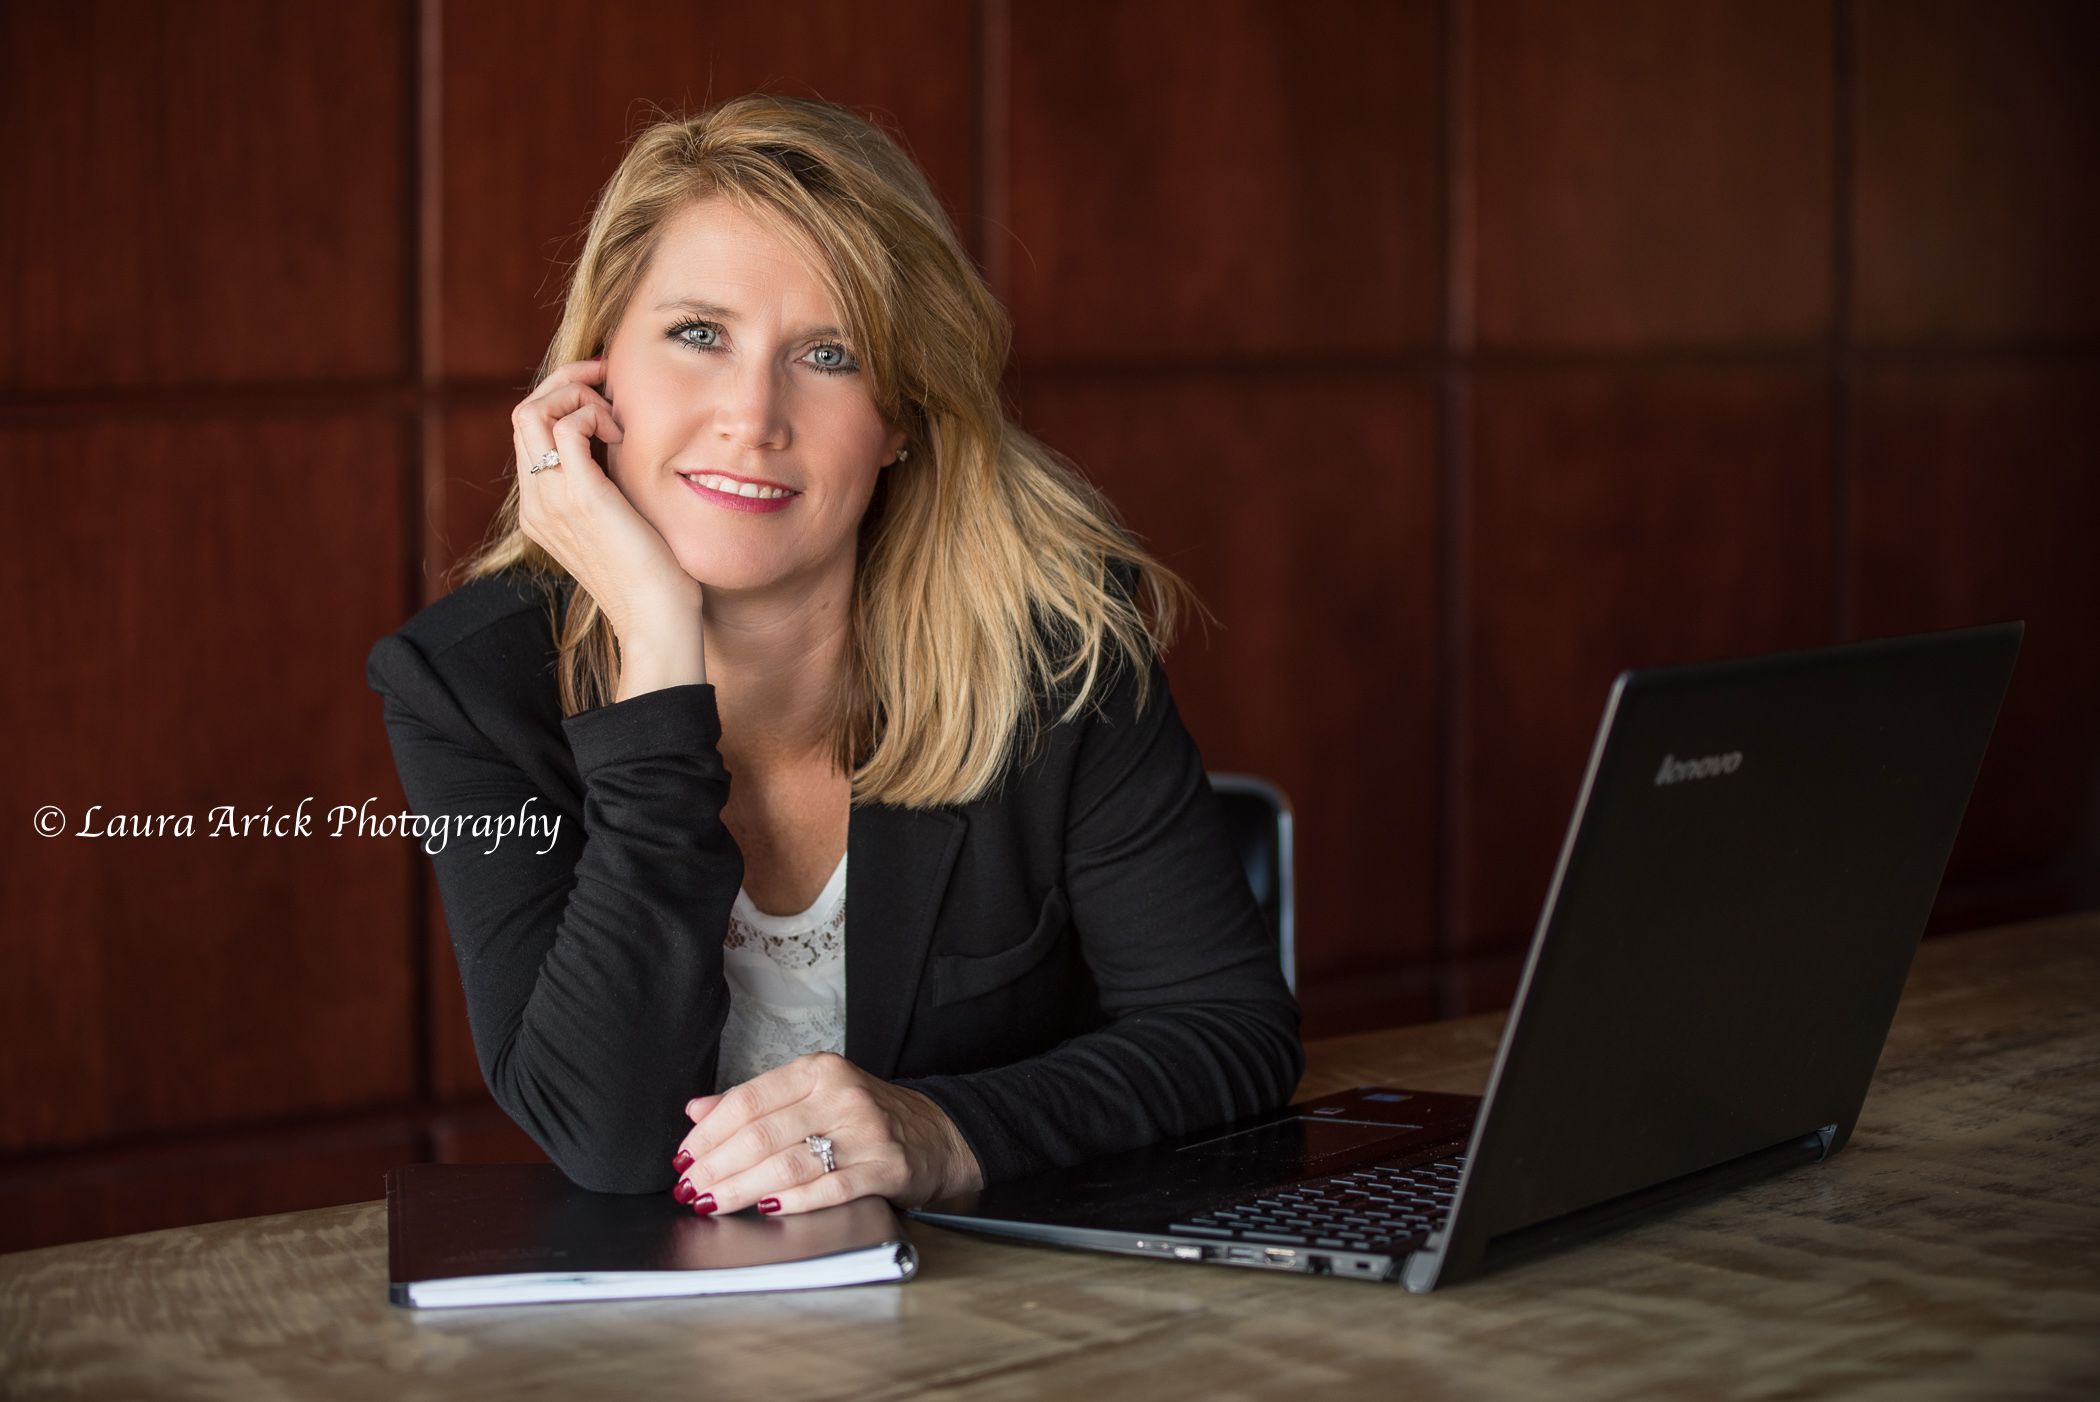 Protected: Fishers Business Head Shots | The Neurofeedback Center LLC